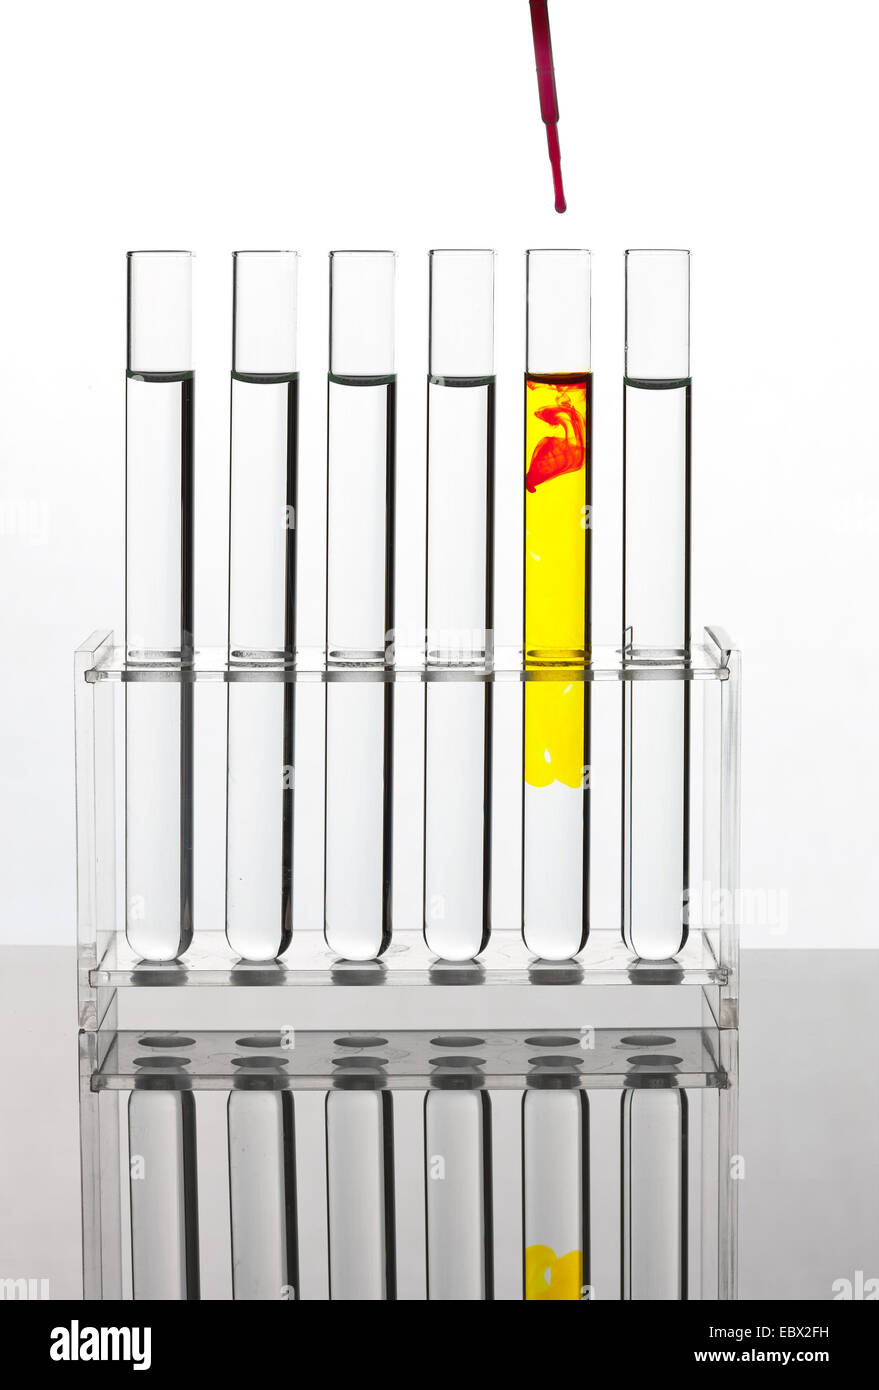 test tubes with colourless liquid standing in a test tube rack, yellow and red liquids are dribbled into one of - Stock Image